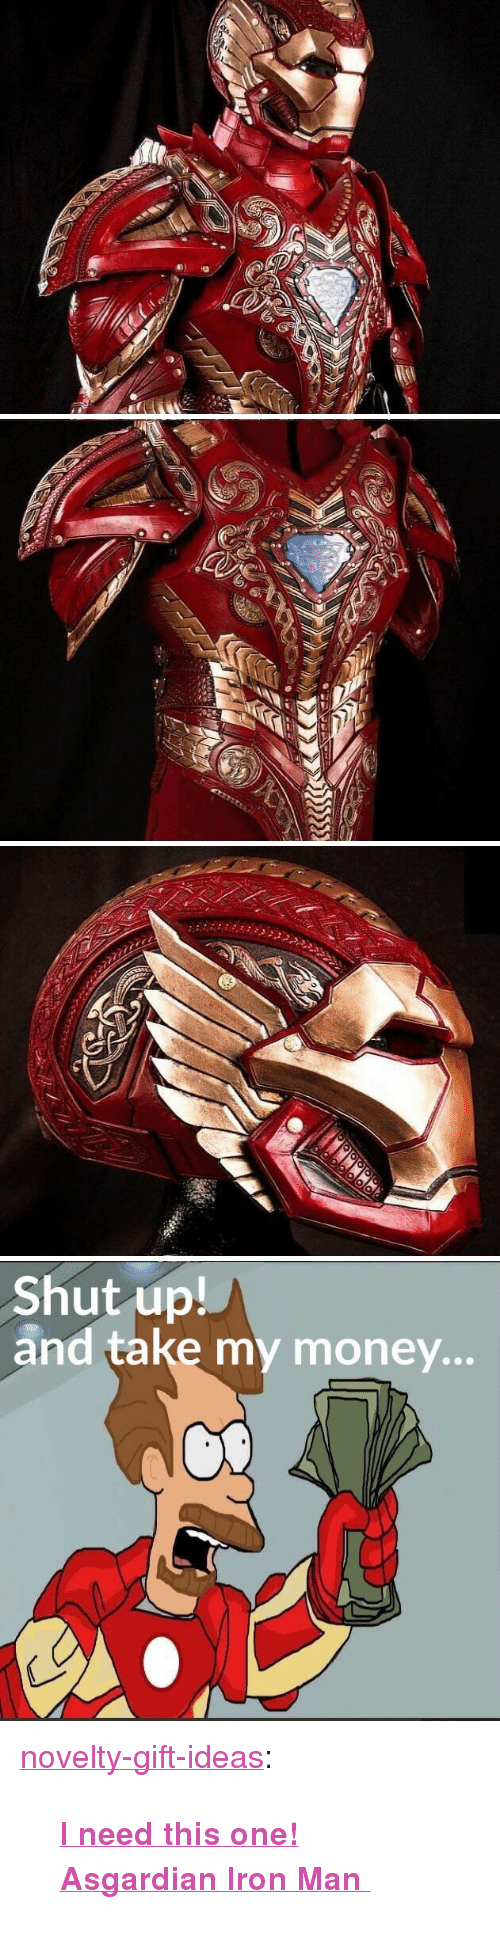 """Shut Up And Take: Shut up!  and take my money... <p><a href=""""https://novelty-gift-ideas.tumblr.com/post/160150765313/i-need-this-one-asgardian-iron-man"""" class=""""tumblr_blog"""">novelty-gift-ideas</a>:</p><blockquote><p><b><a href=""""https://novelty-gift-ideas.com/prince-armory-custom-creations/"""">  I need this one! Asgardian Iron Man  </a></b><br/></p></blockquote>"""